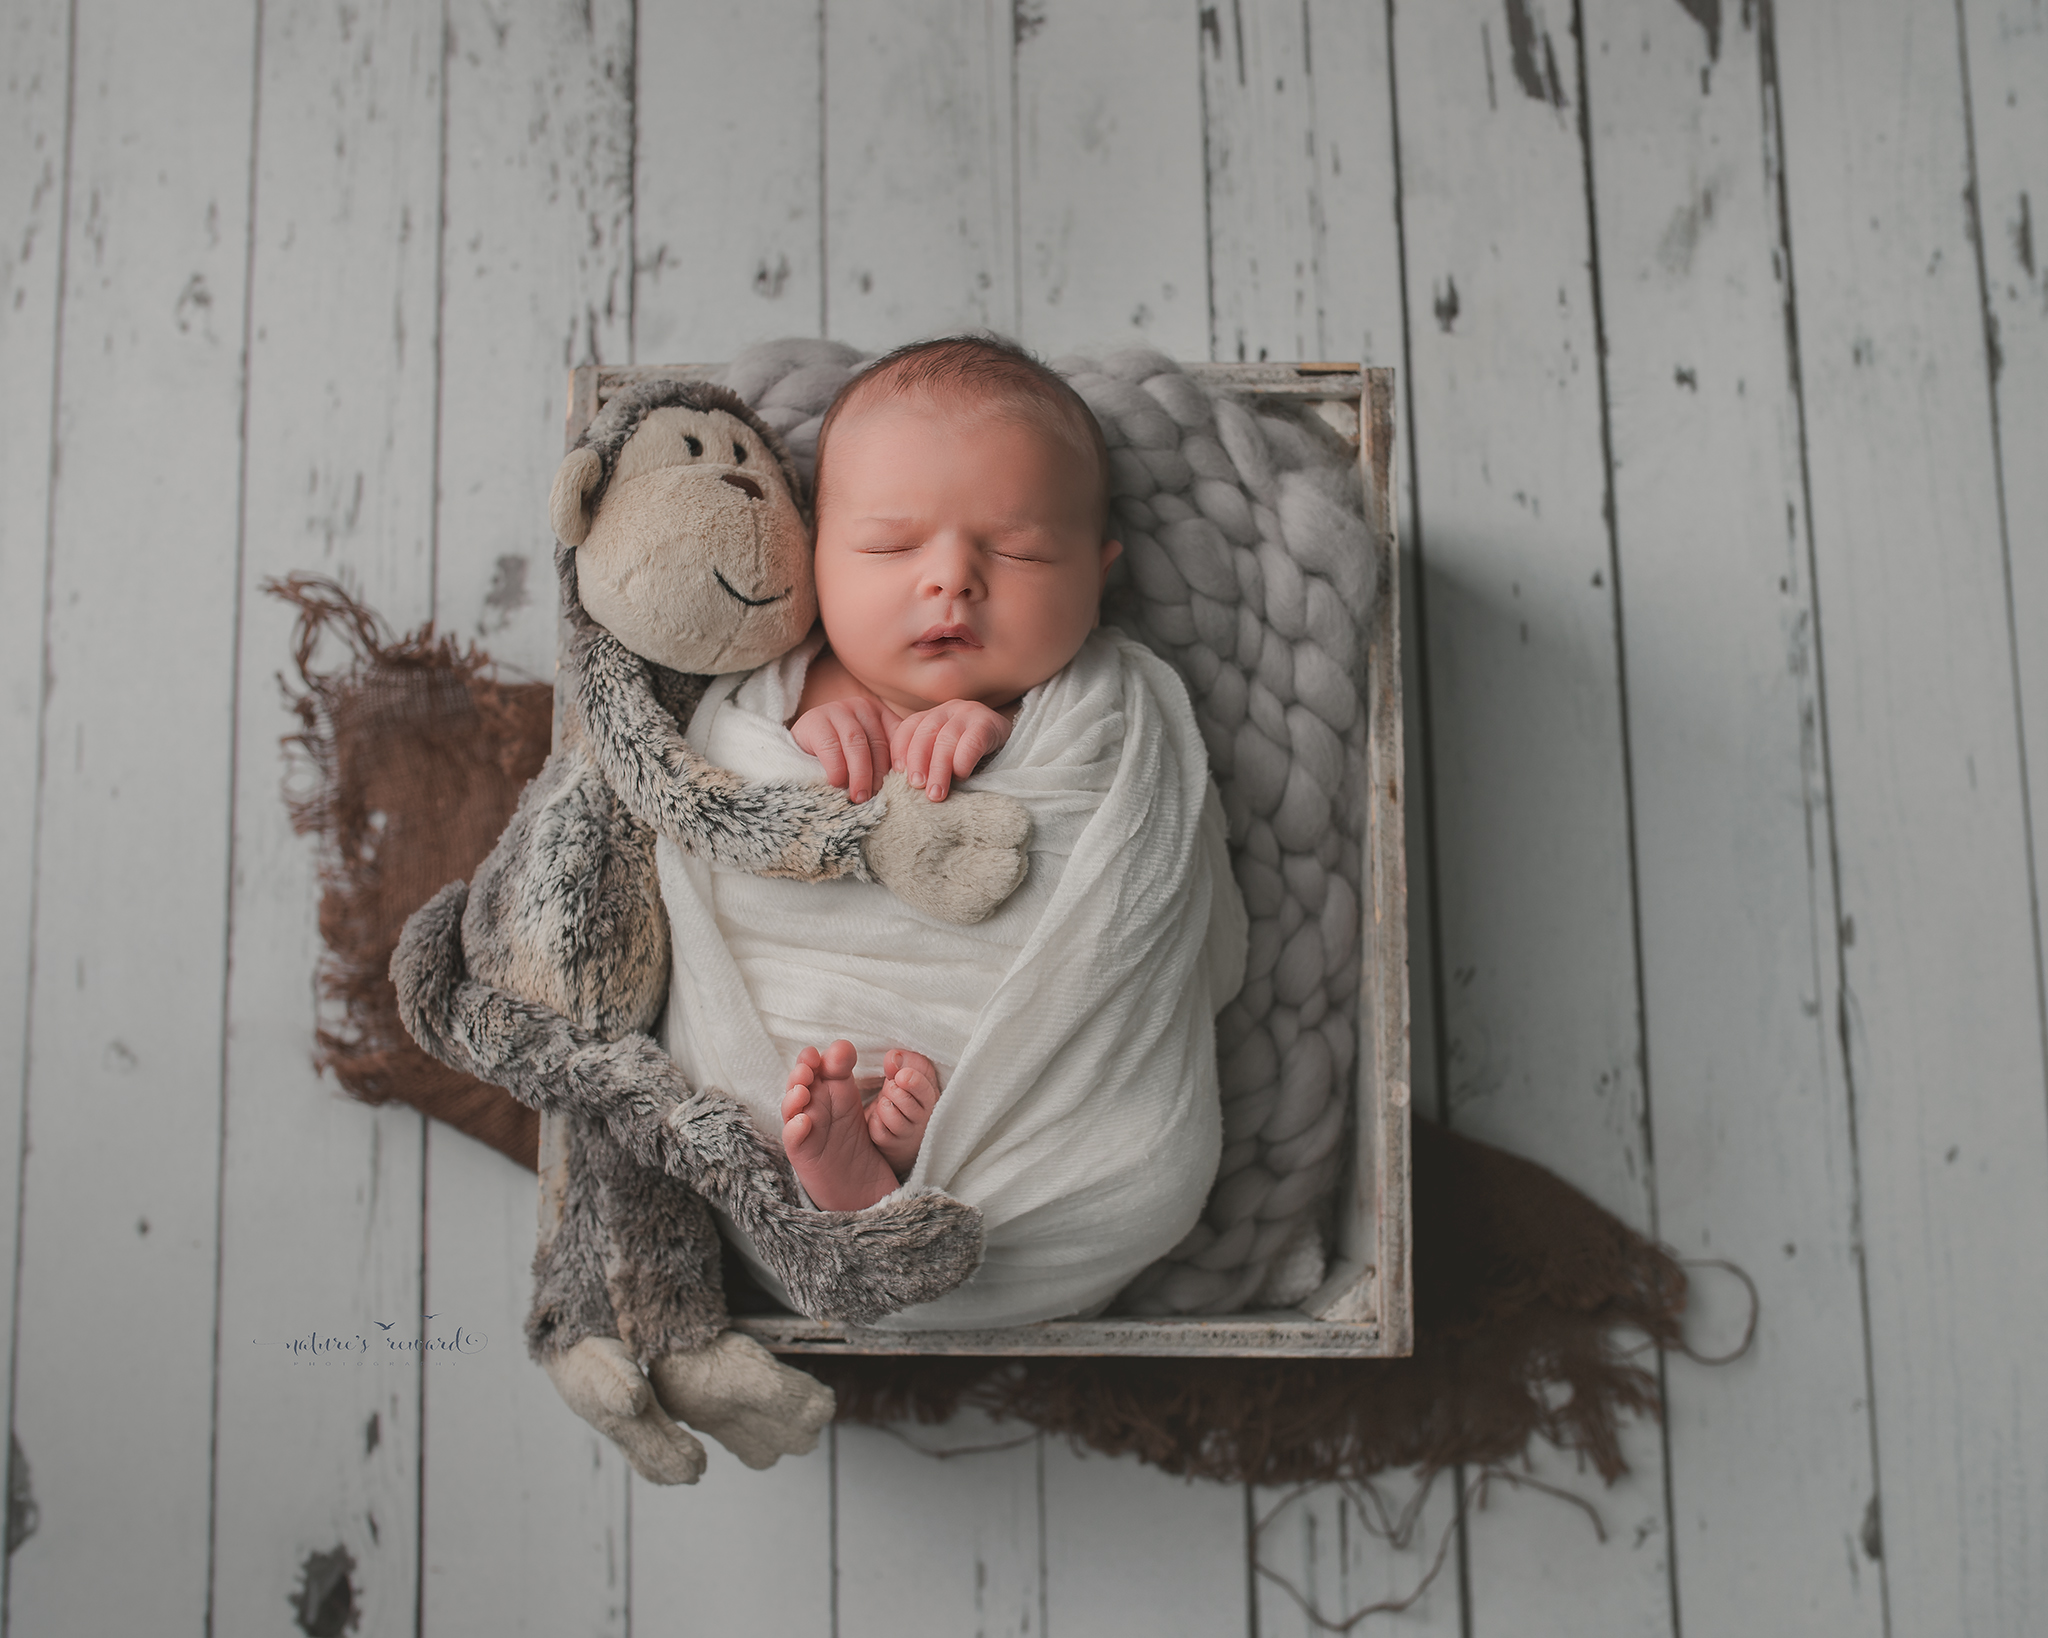 Newborn baby boy swaddled in white, on a white wood floor, resting in a box, a portrait by Nature's Reward Photography